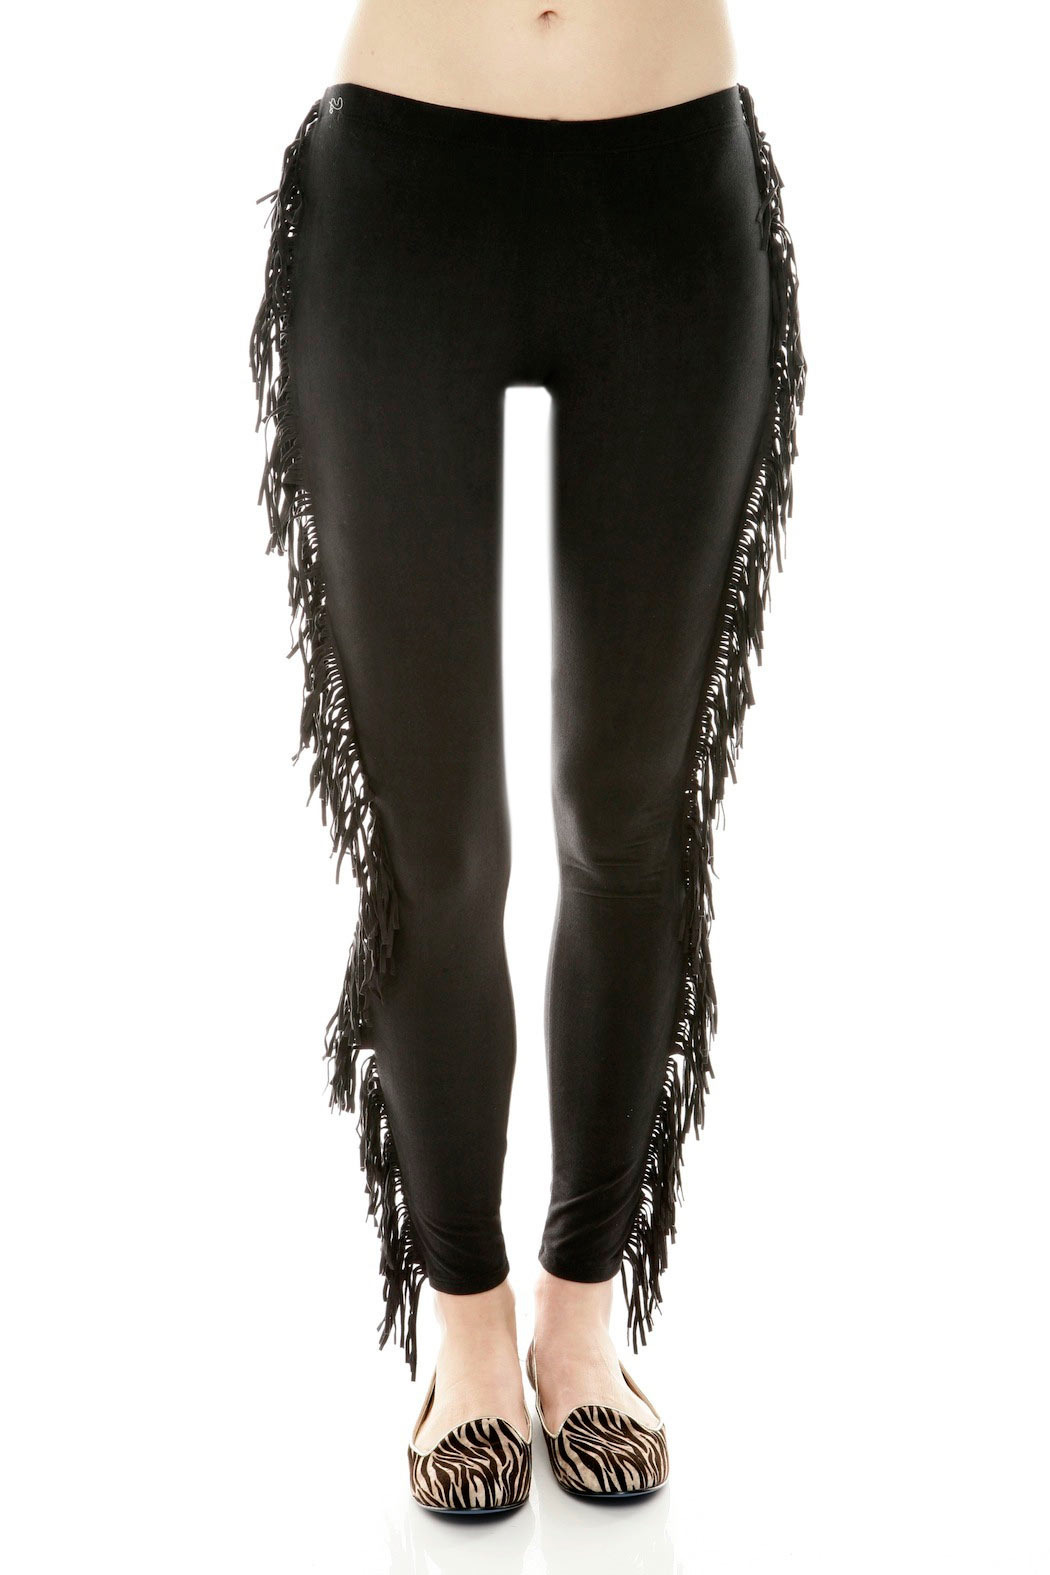 See You Monday Black Fringe Leggings Shoptiques